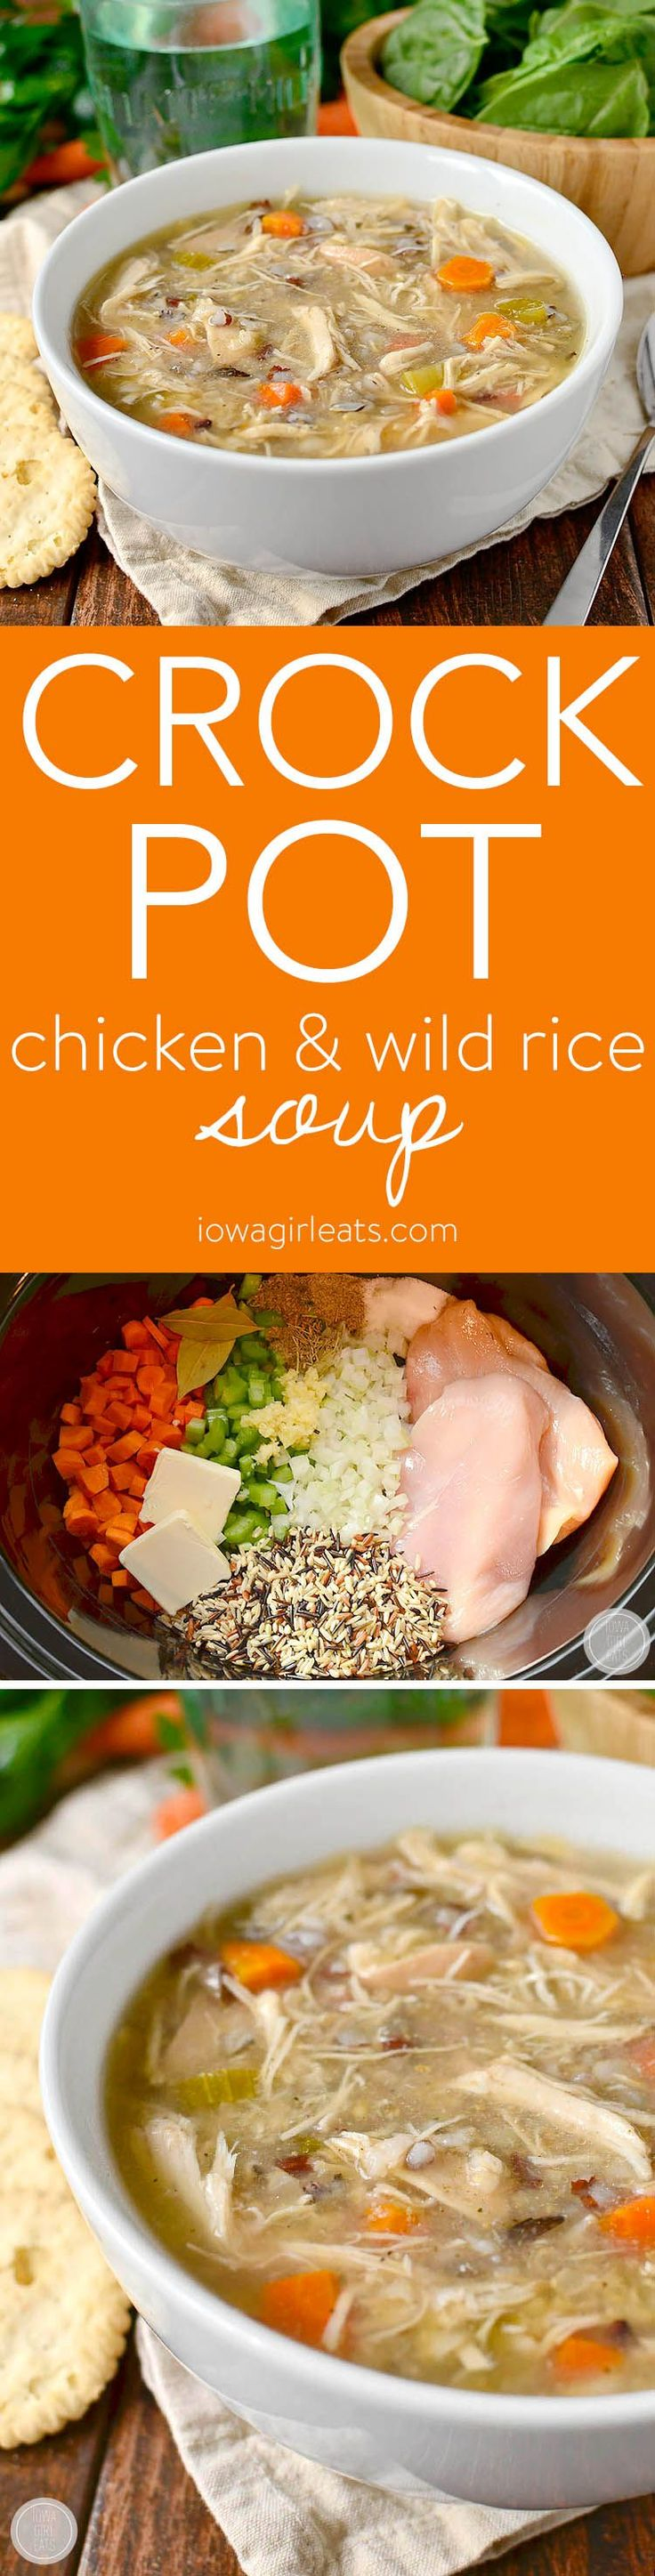 Crock Pot Chicken and Wild Rice Soup is a healthy, quick and easy crock pot…